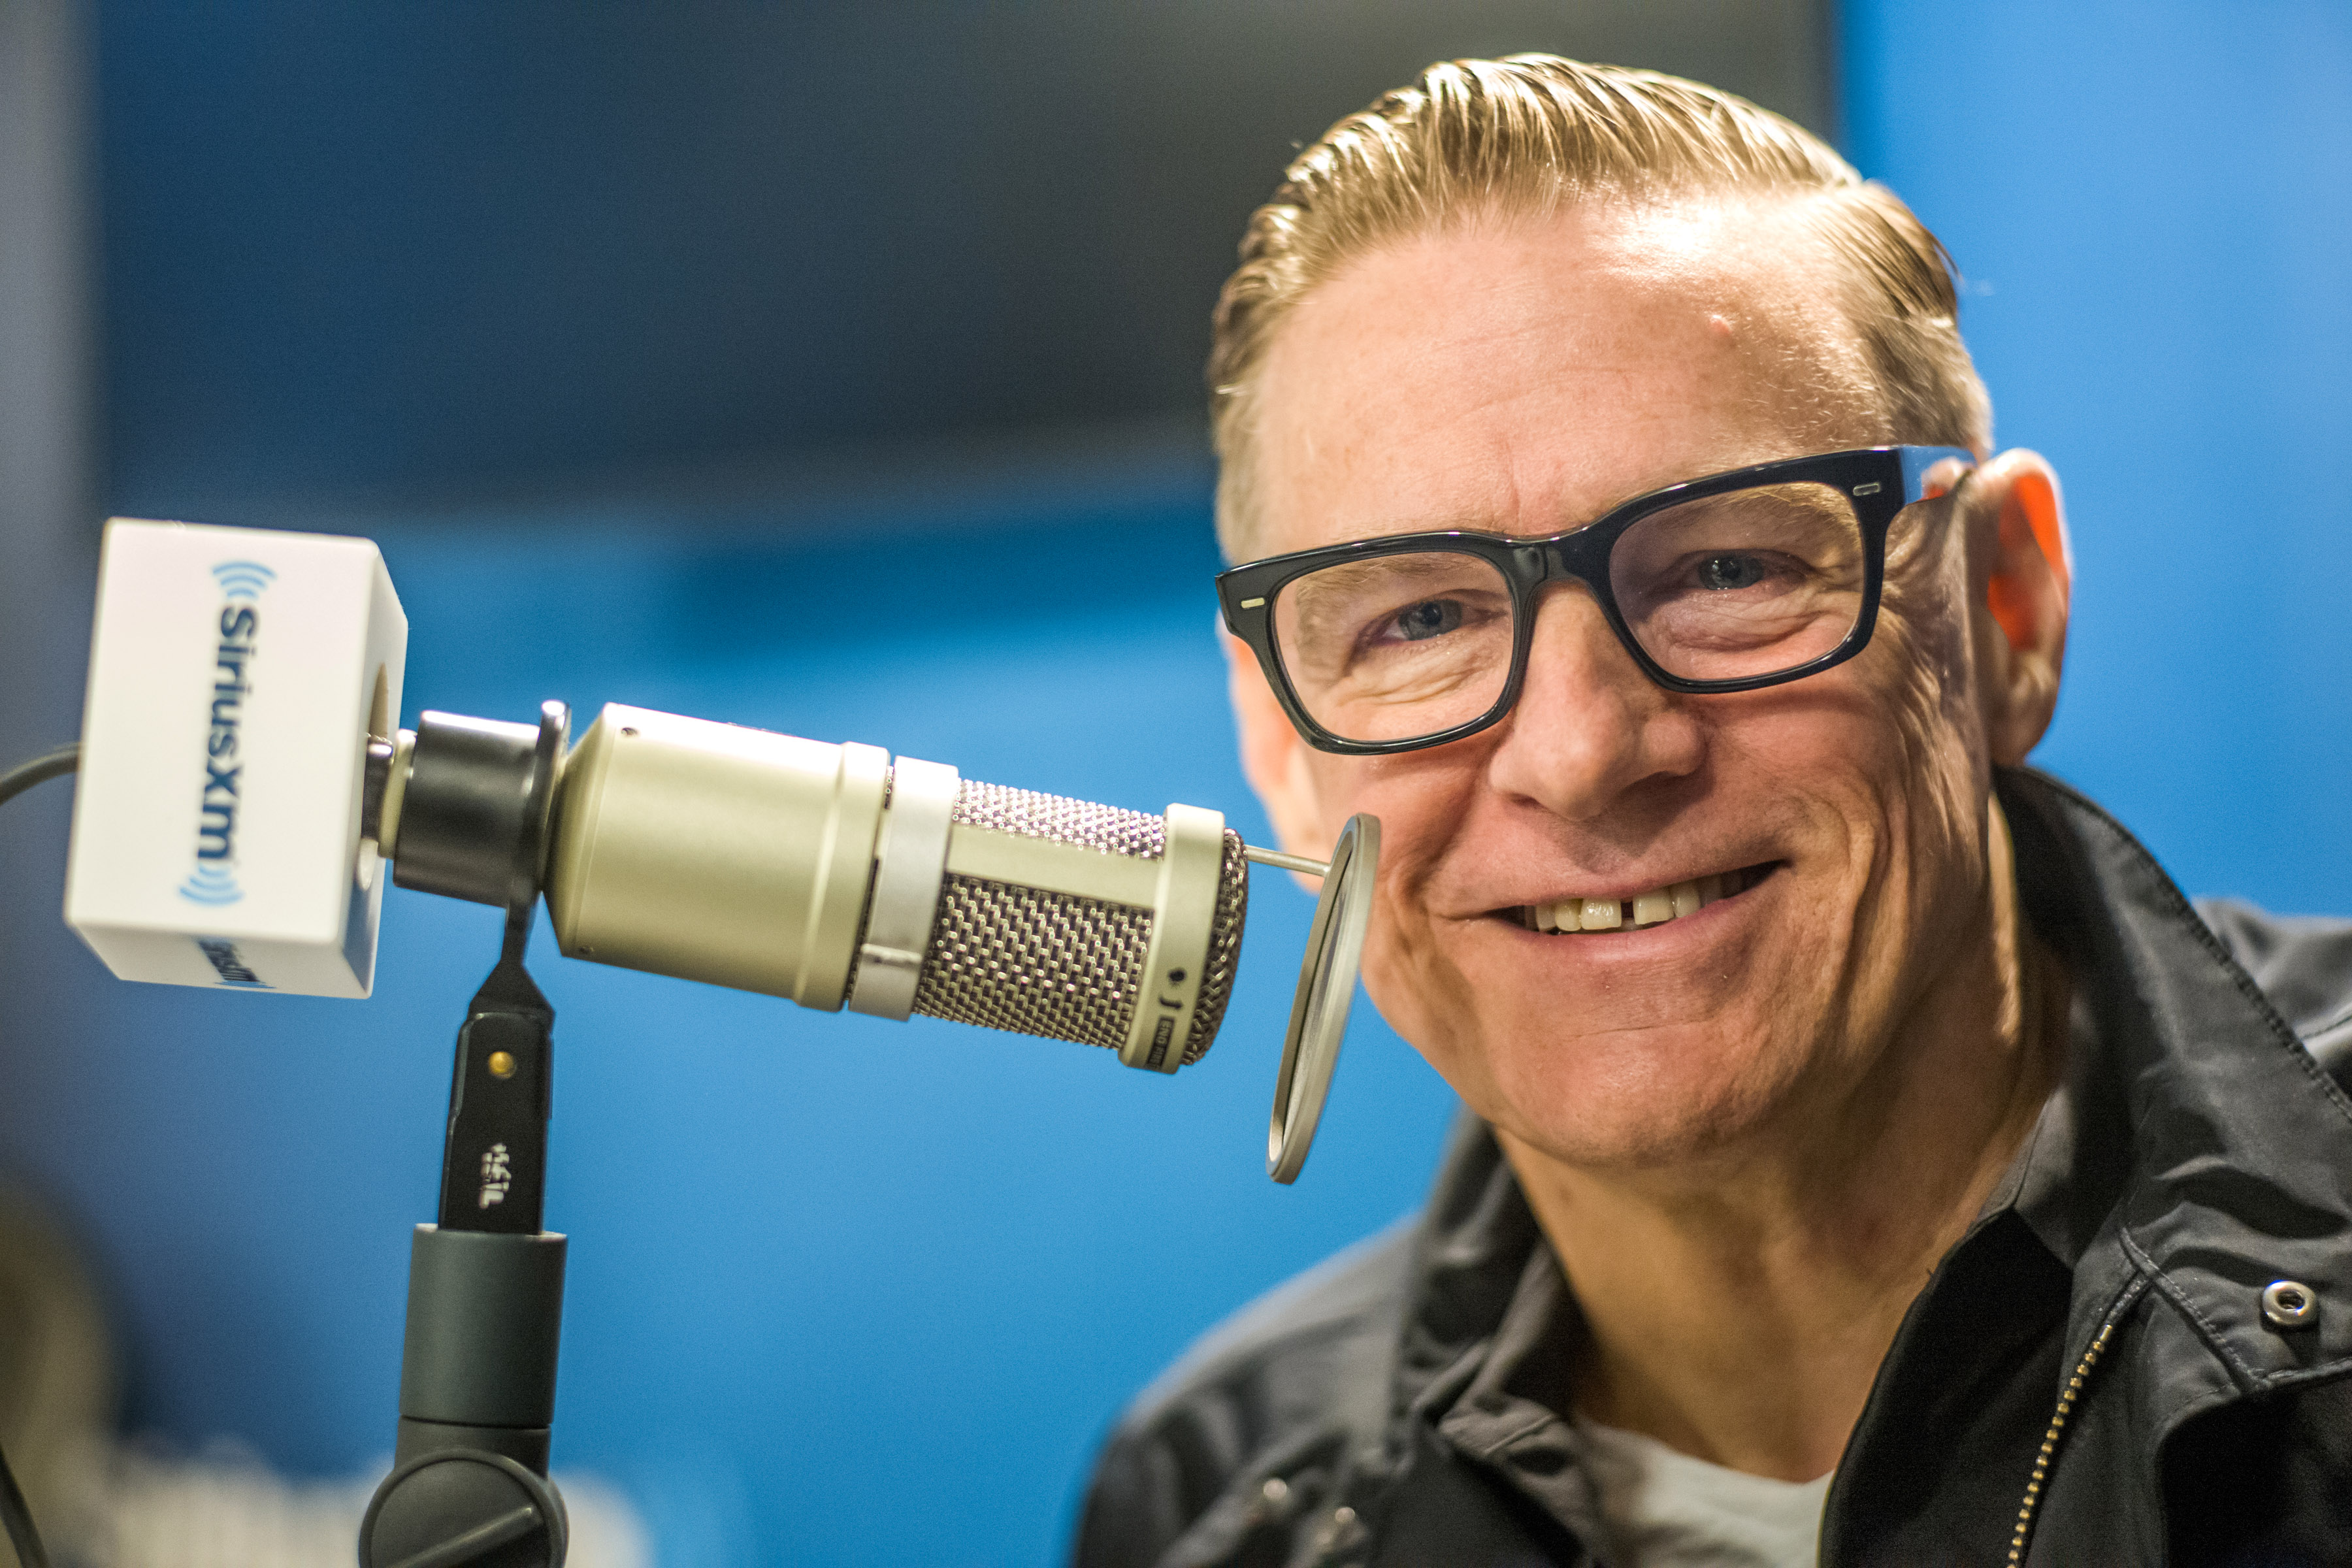 NEW YORK, NY - MAY 01:  (EXCLUSIVE COVERAGE) Bryan Adams visits SiriusXM Studios on May 1, 2019 in New York City.  (Photo by Steven Ferdman/Getty Images)